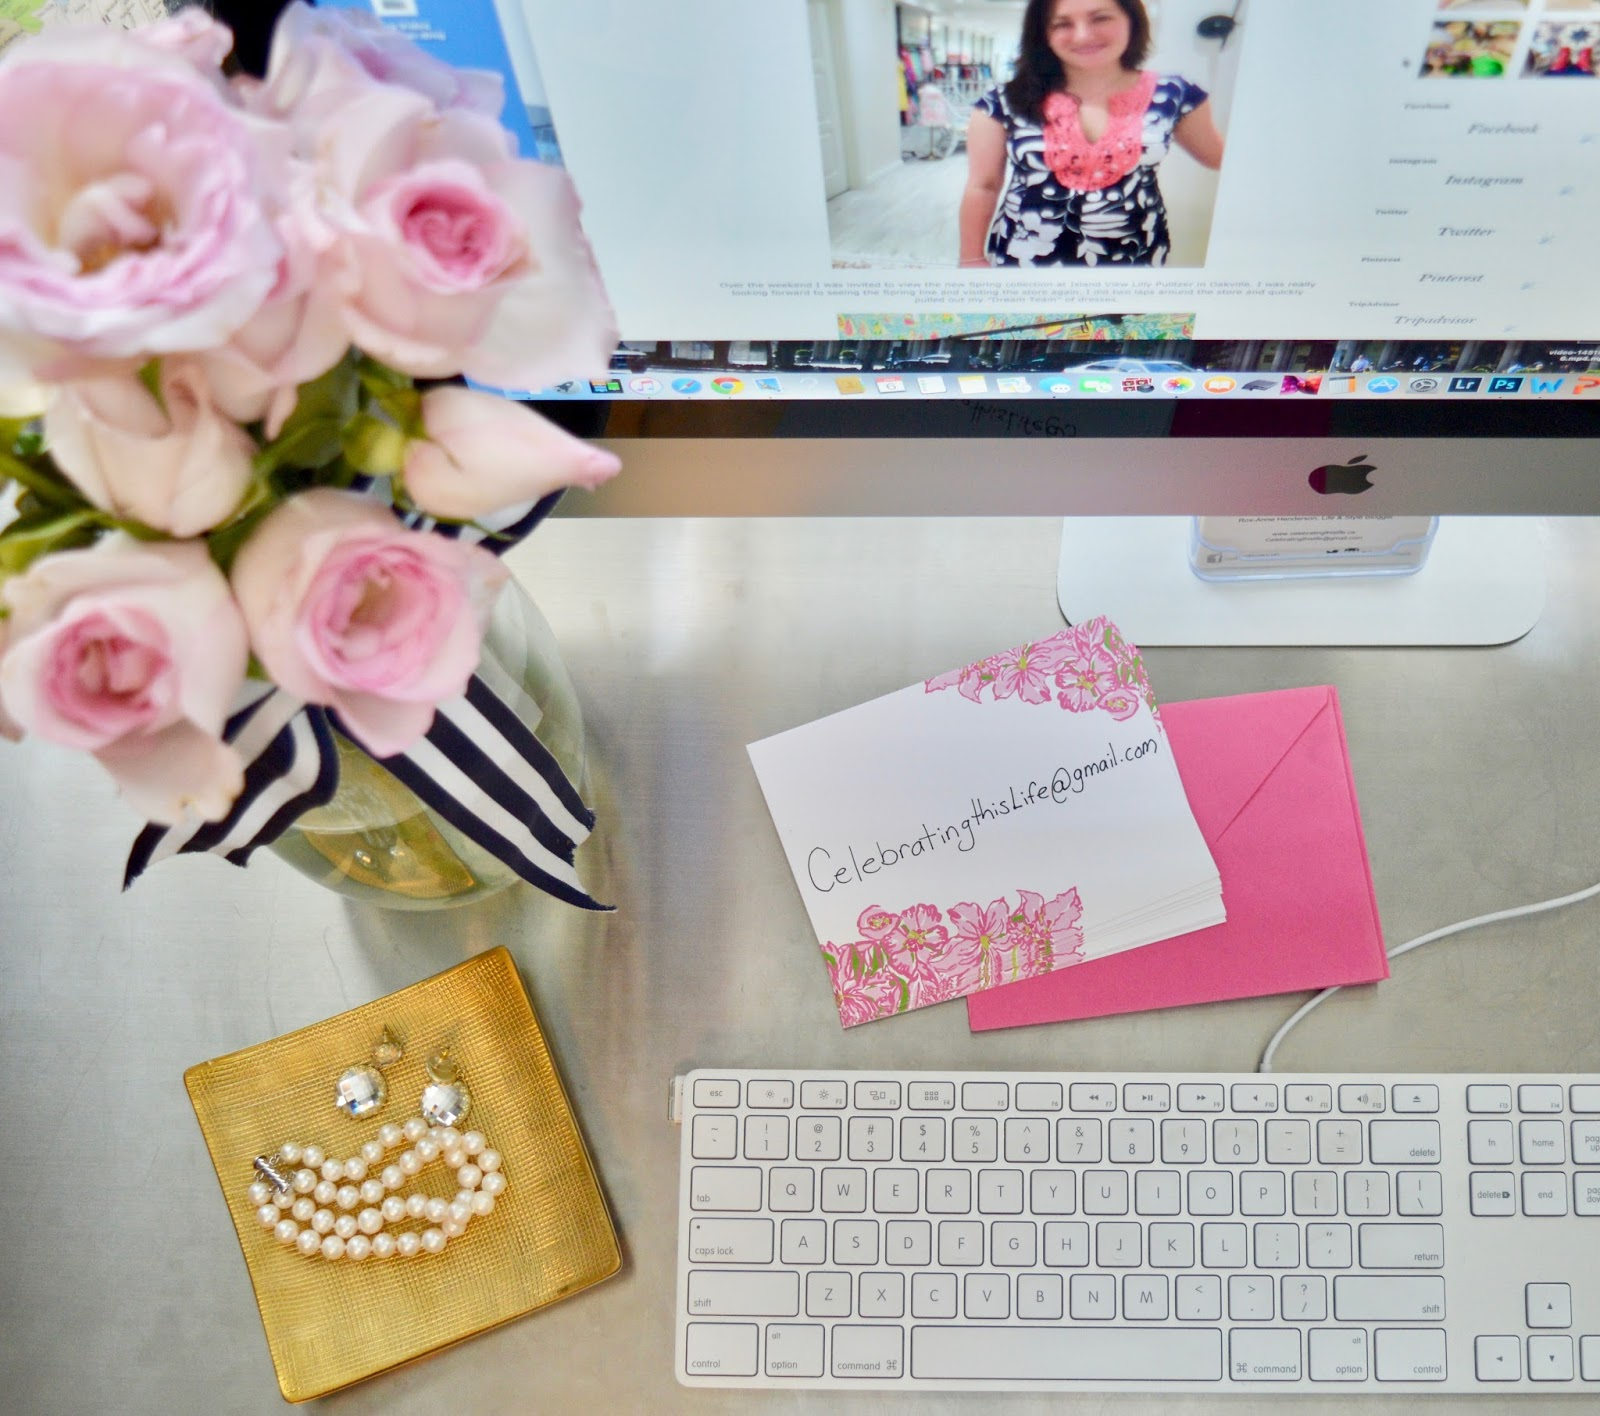 blogging advice and tips